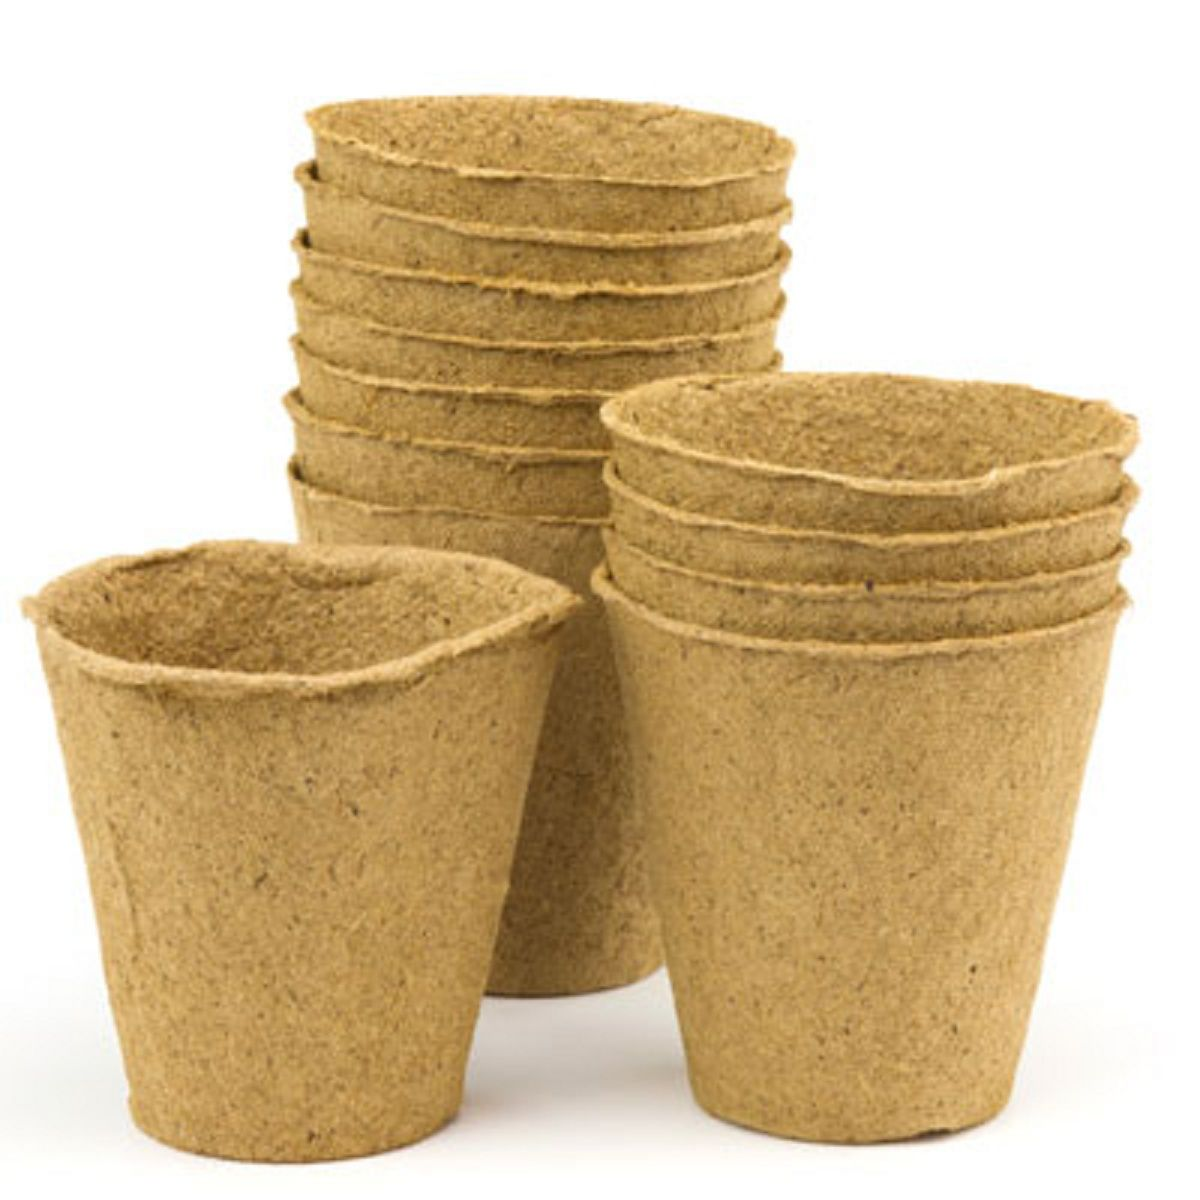 Diy Biodegradable Pots: Biodegradable Gardening Pots Are 100% Recyclable Custom